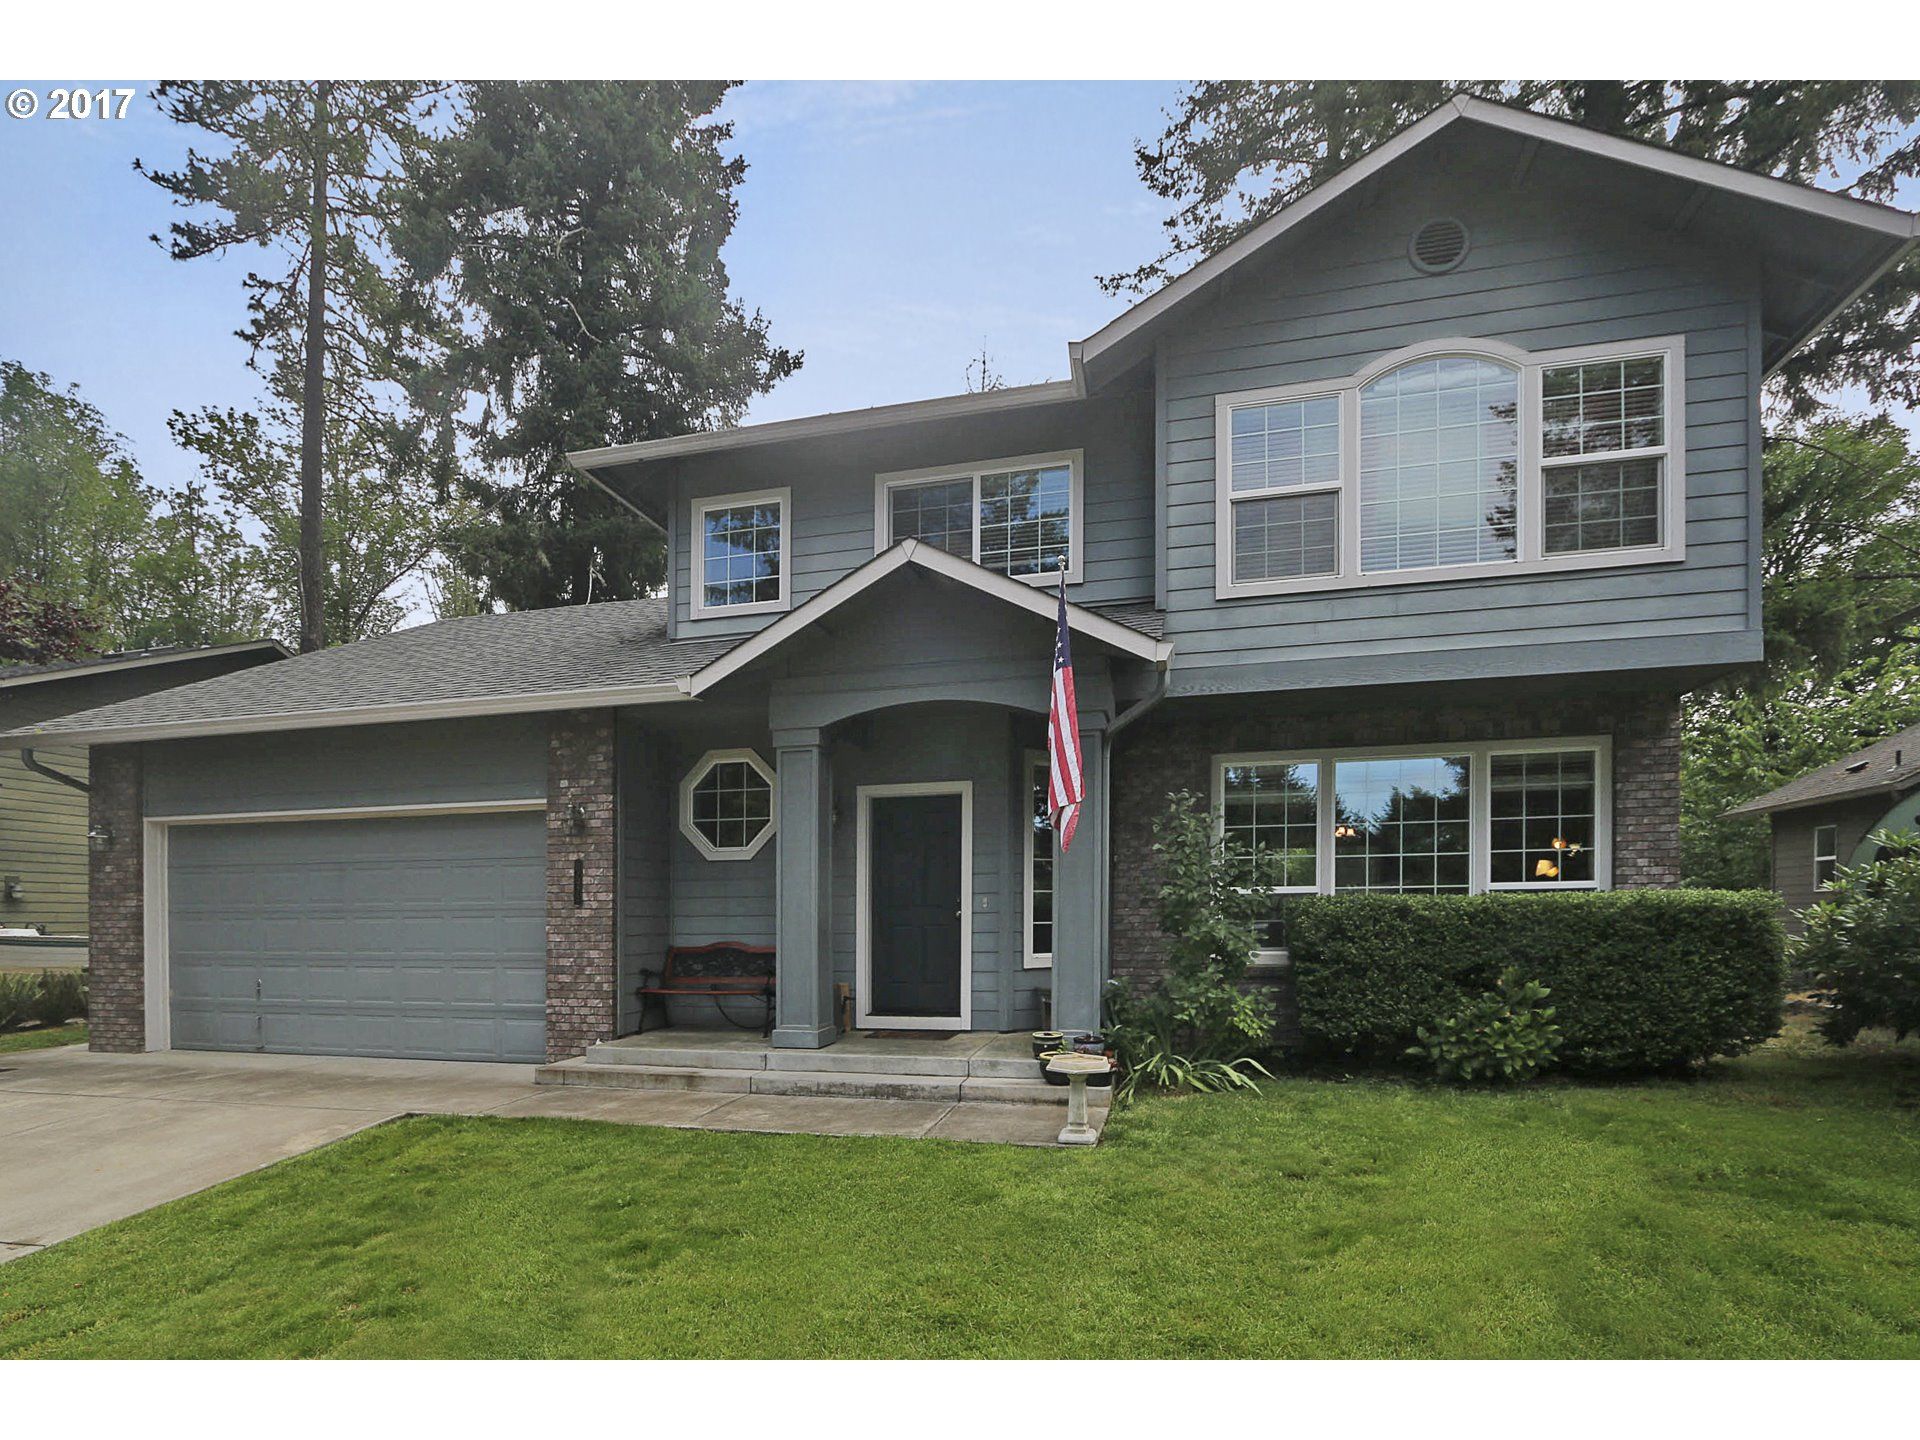 87979 WOODBERRY LN Veneta, OR 97487 - MLS #: 17329619